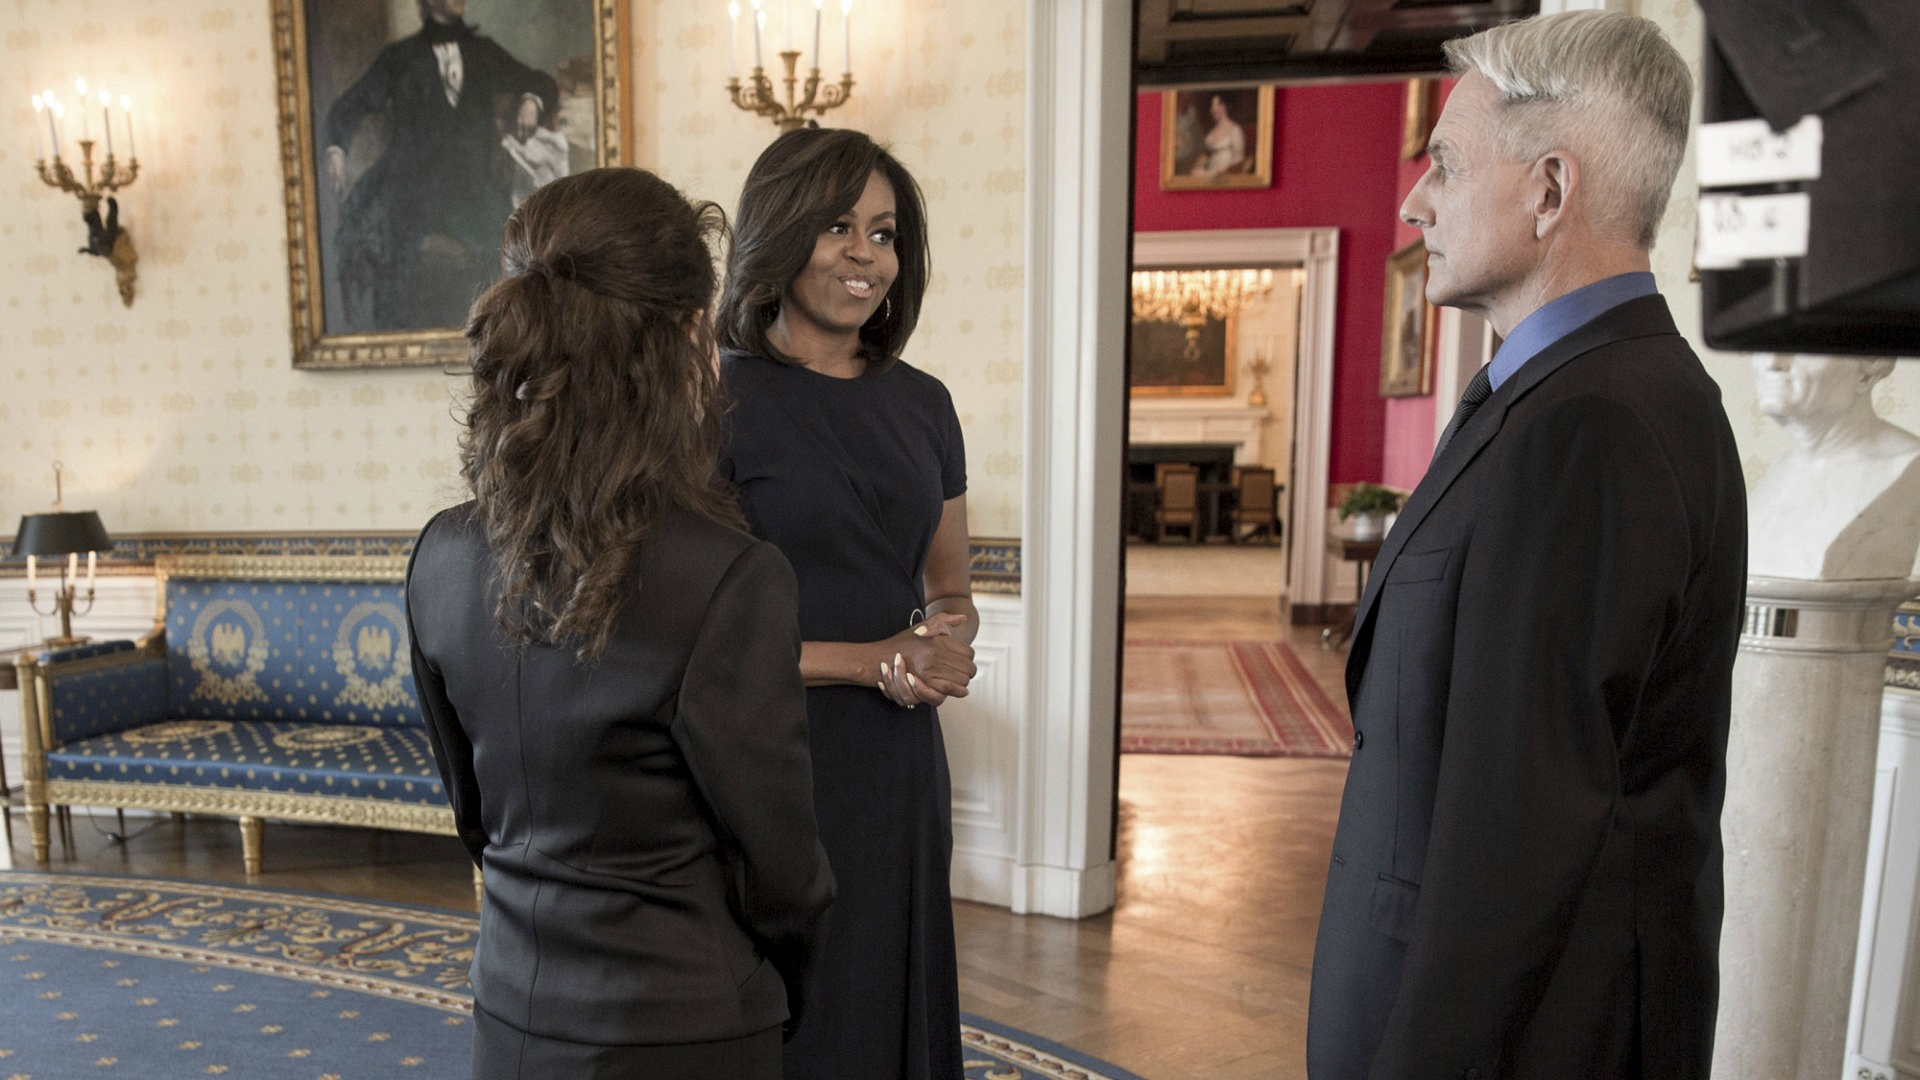 Don't miss a special appearance by First Lady Michelle Obama on NCIS.